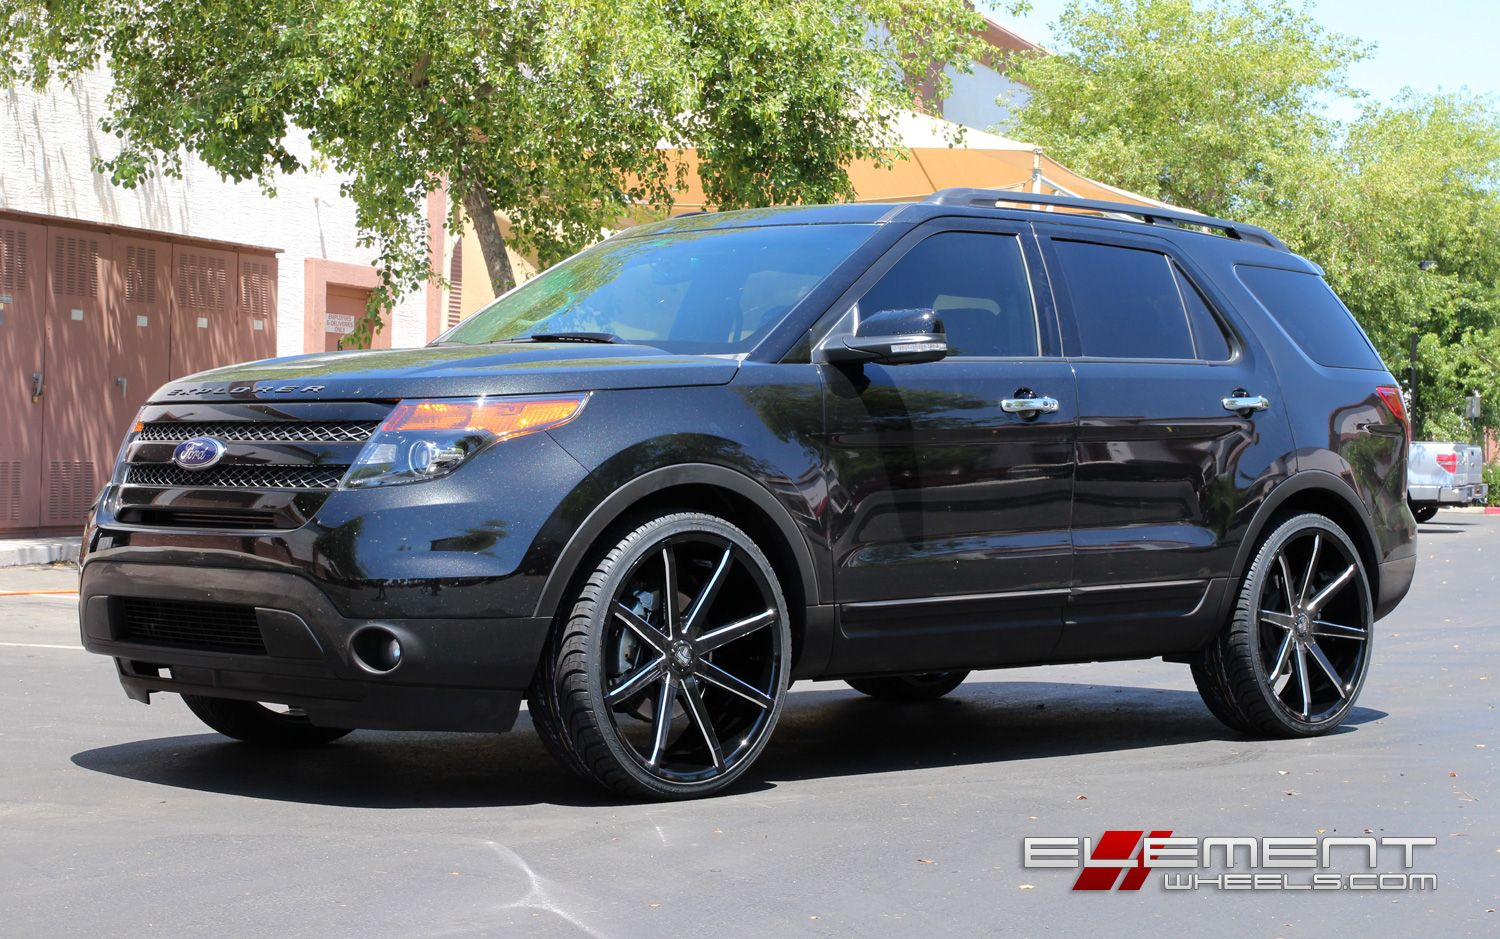 24 inch dub push gloss black milled wheels on 2014 ford explorer w specs wheels sport ute. Black Bedroom Furniture Sets. Home Design Ideas